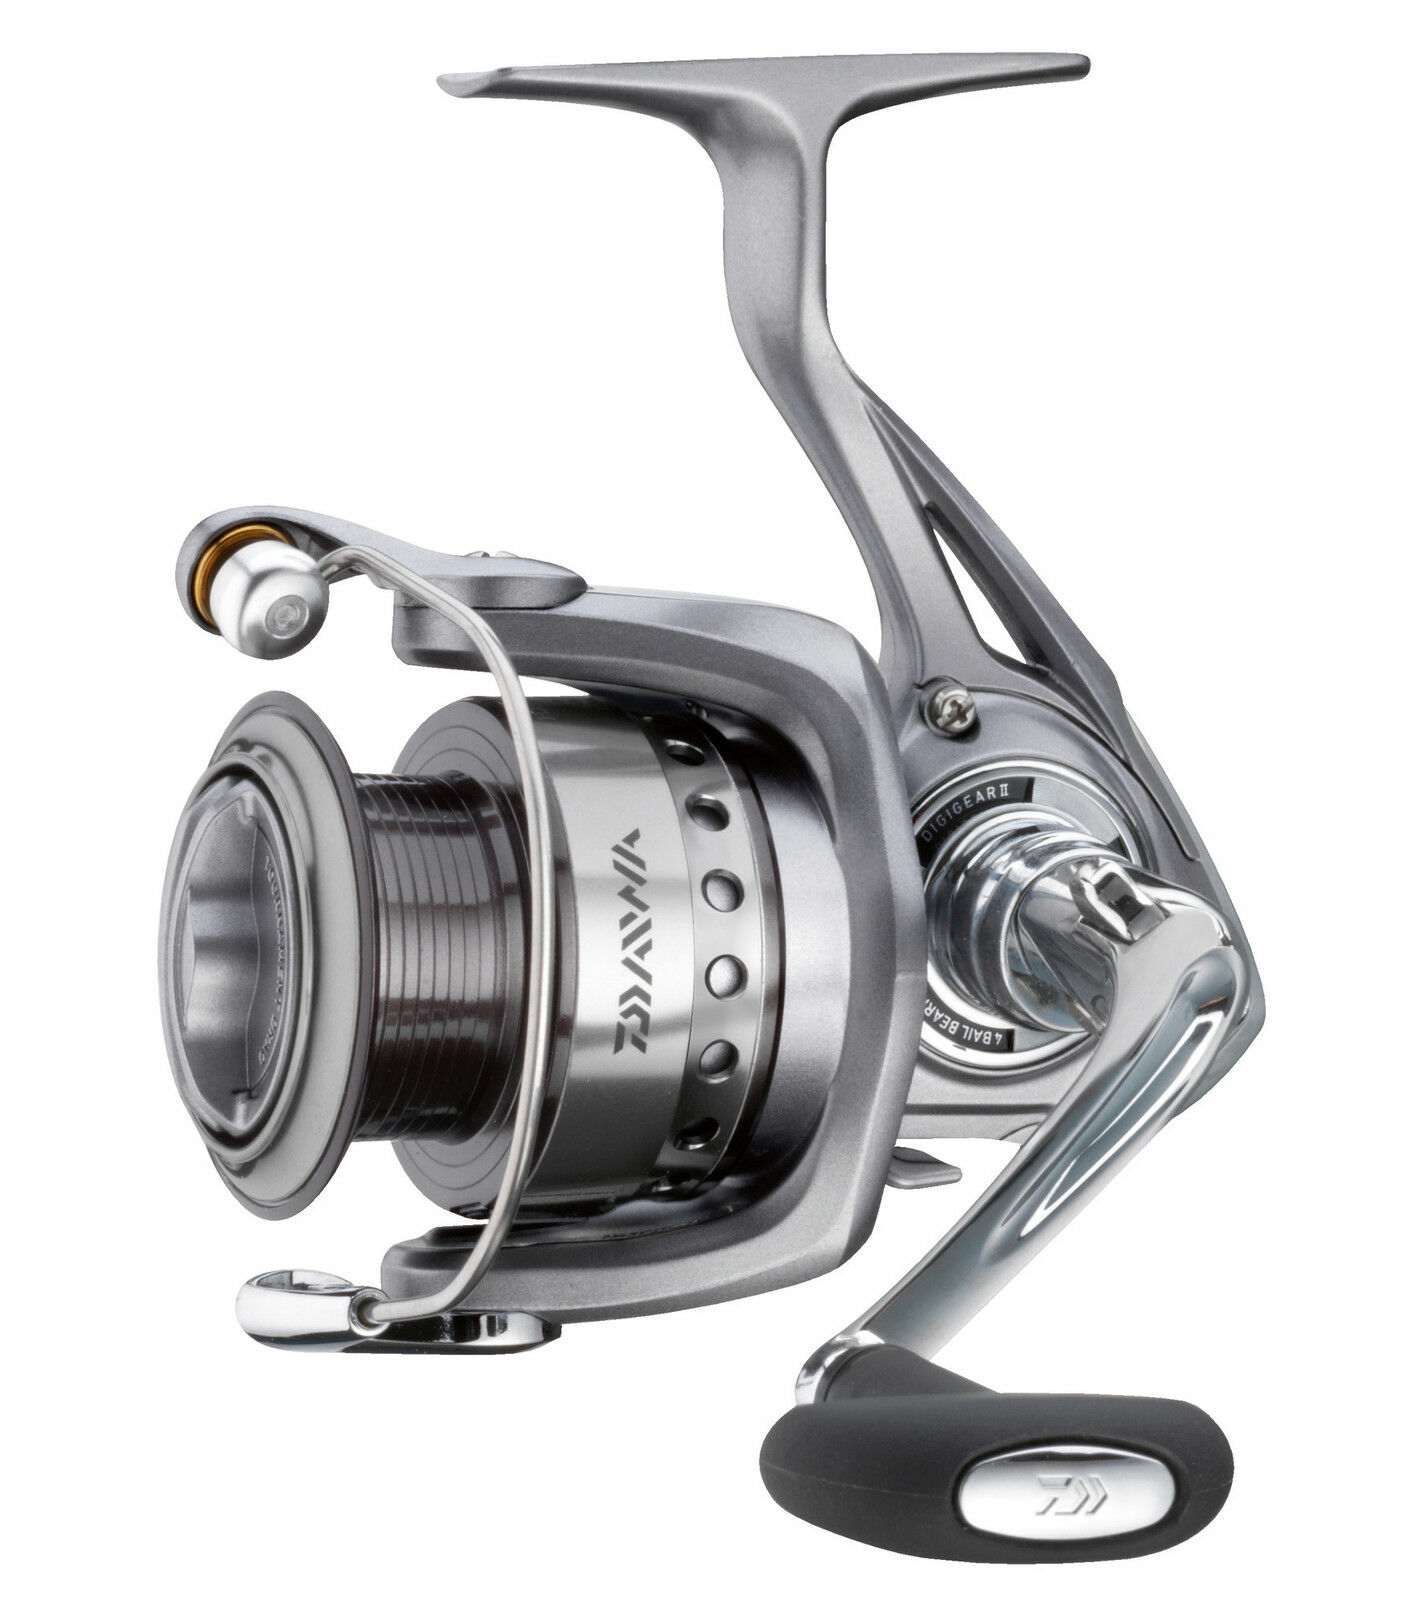 1 Stück Daiwa Exceler S 3500 Stationärrolle Spinrolle Rolle Angelrolle